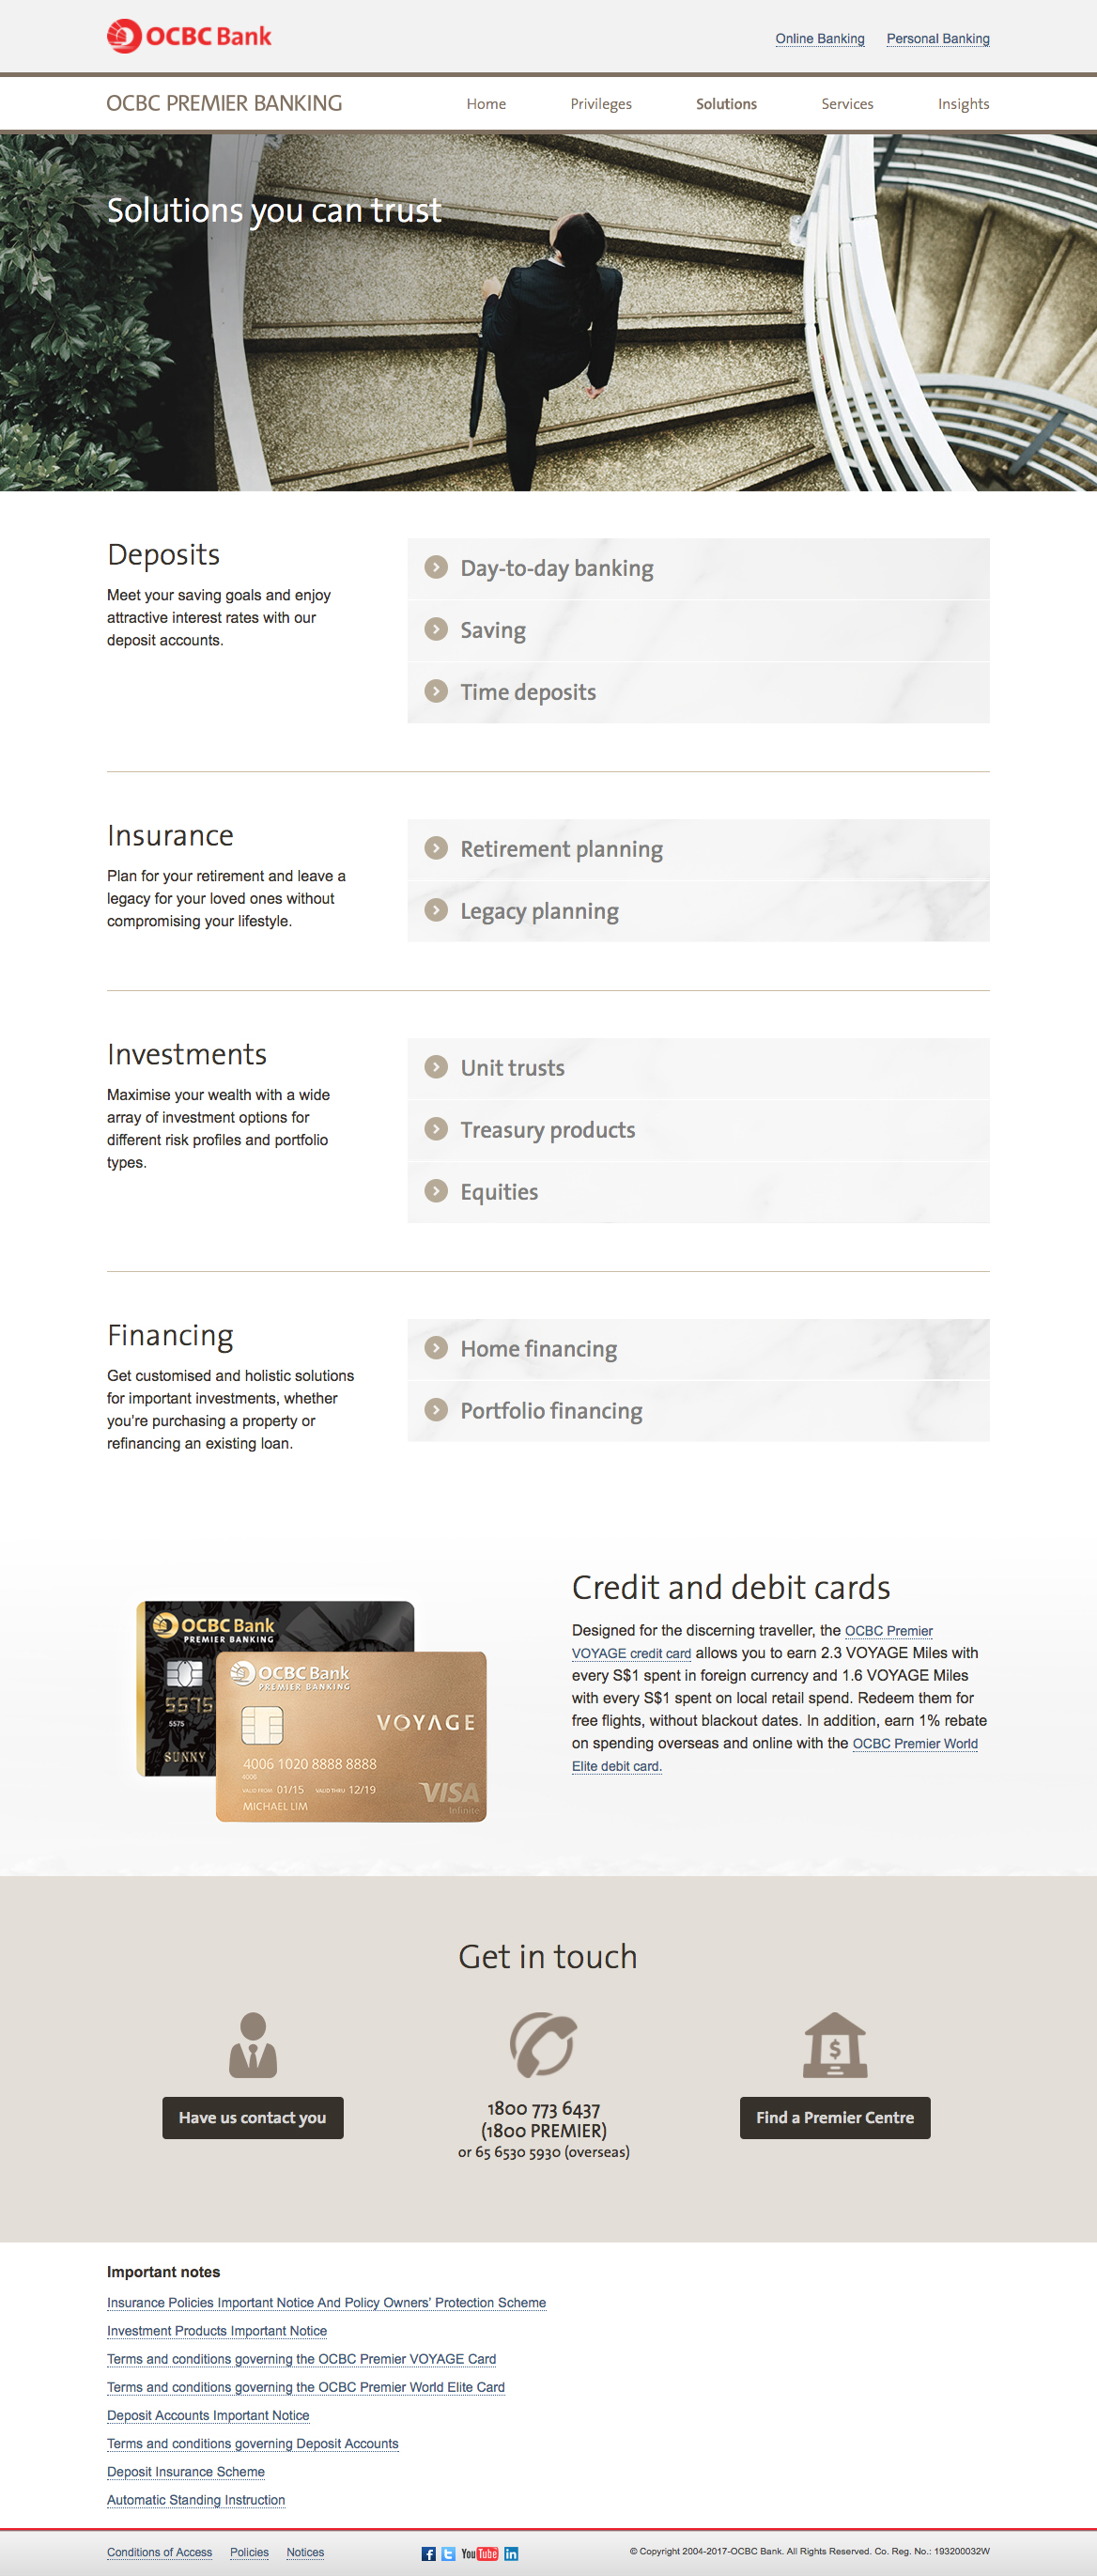 OCBC Premier Banking and Premier Private Client Web Pages